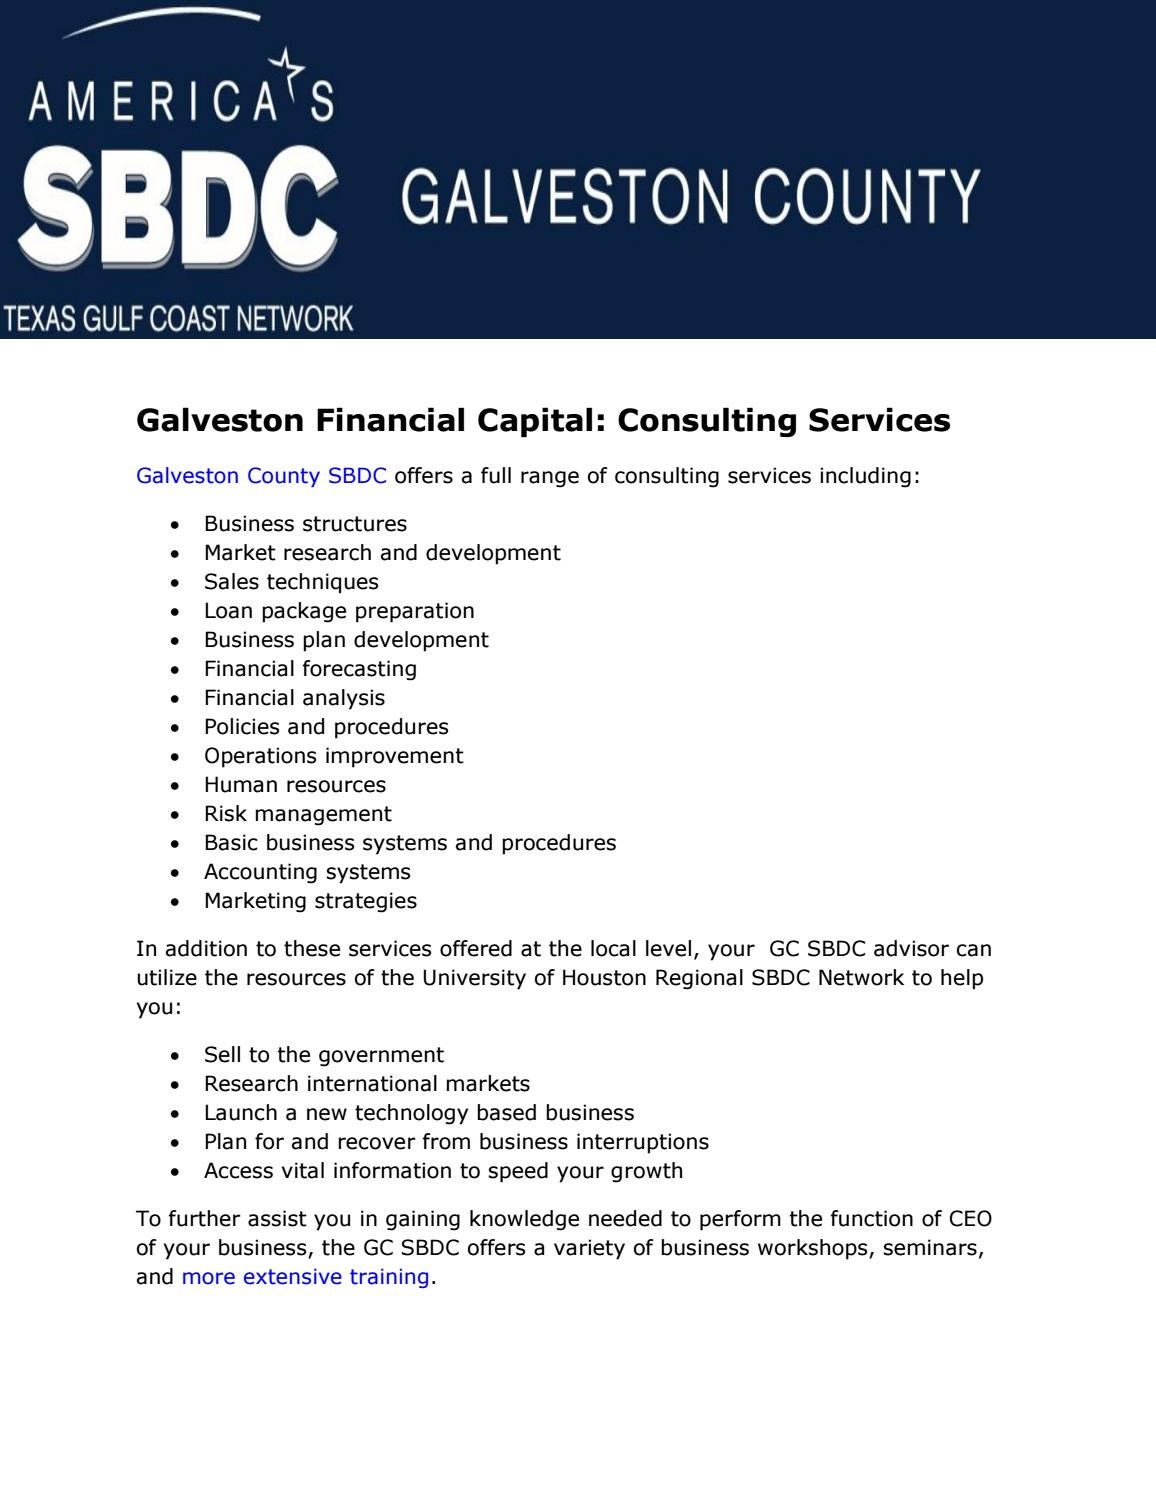 Galveston Financial Capital: Consulting Services by Kadienne